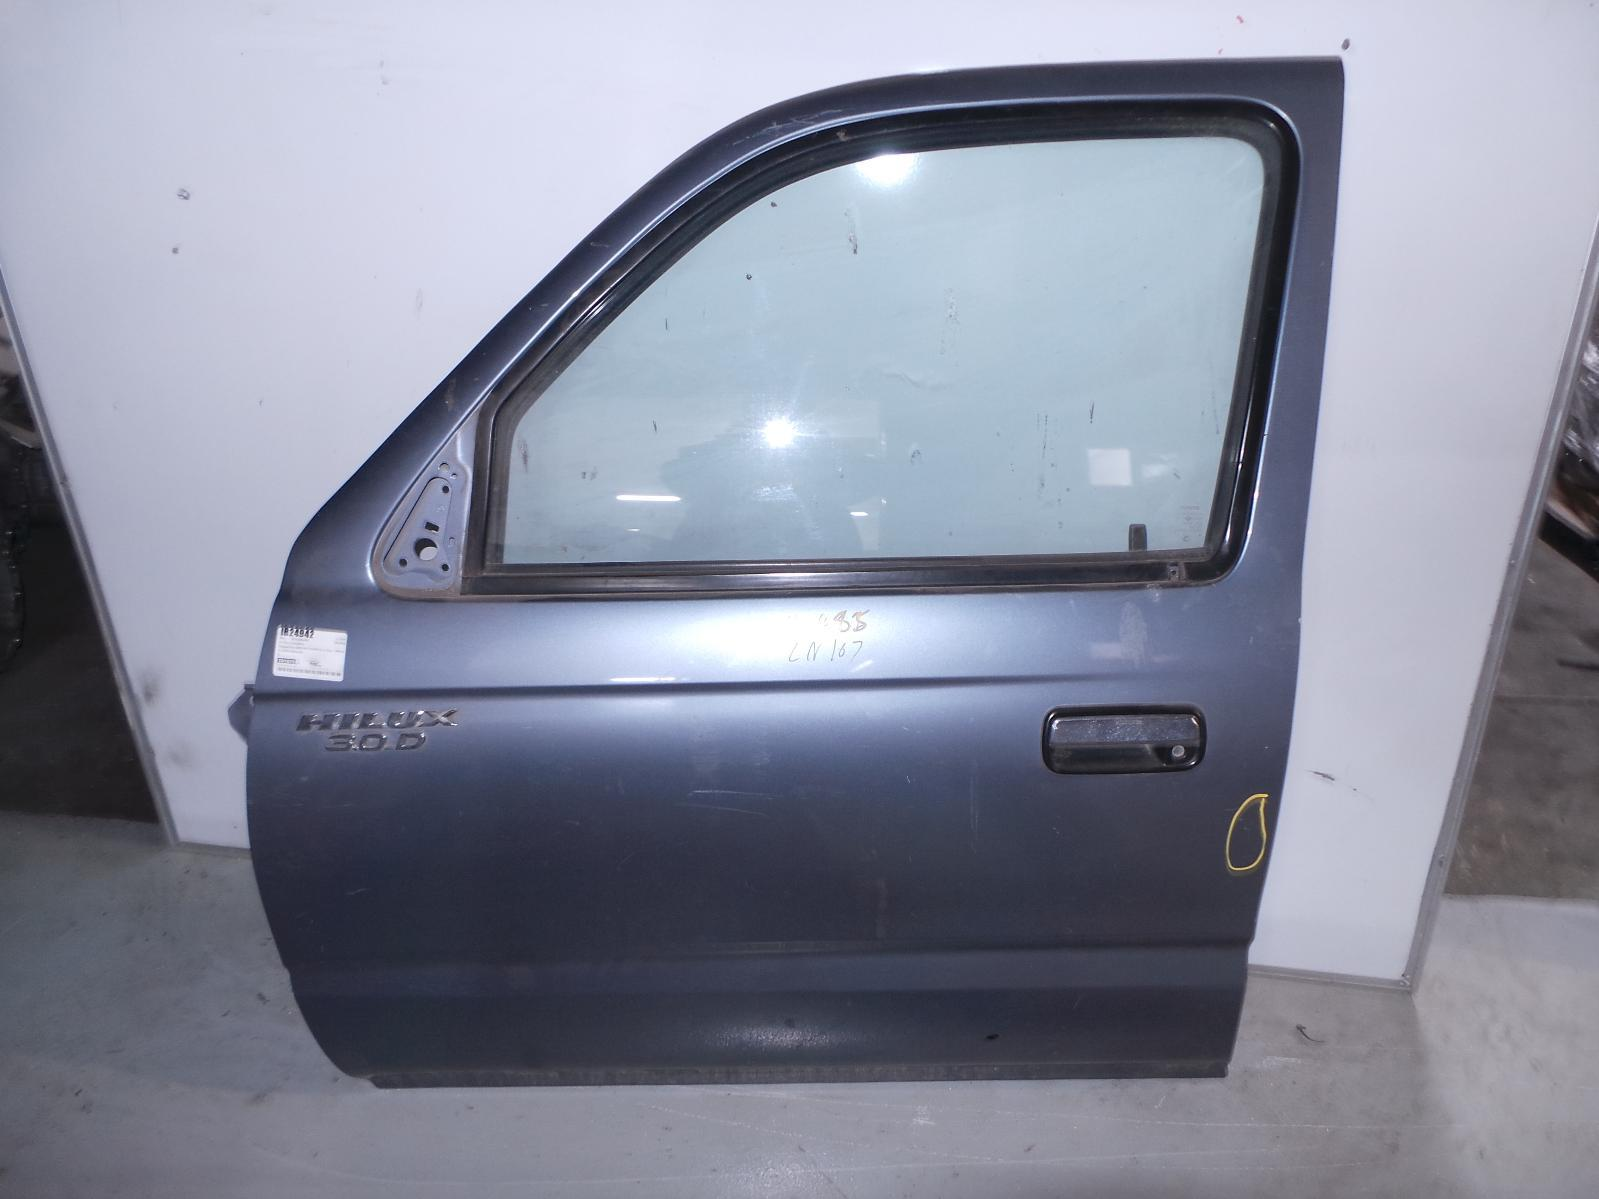 TOYOTA HILUX, Left Front Door, DUAL CAB, UTE BACK, FULL GLASS TYPE, 09/97-03/05